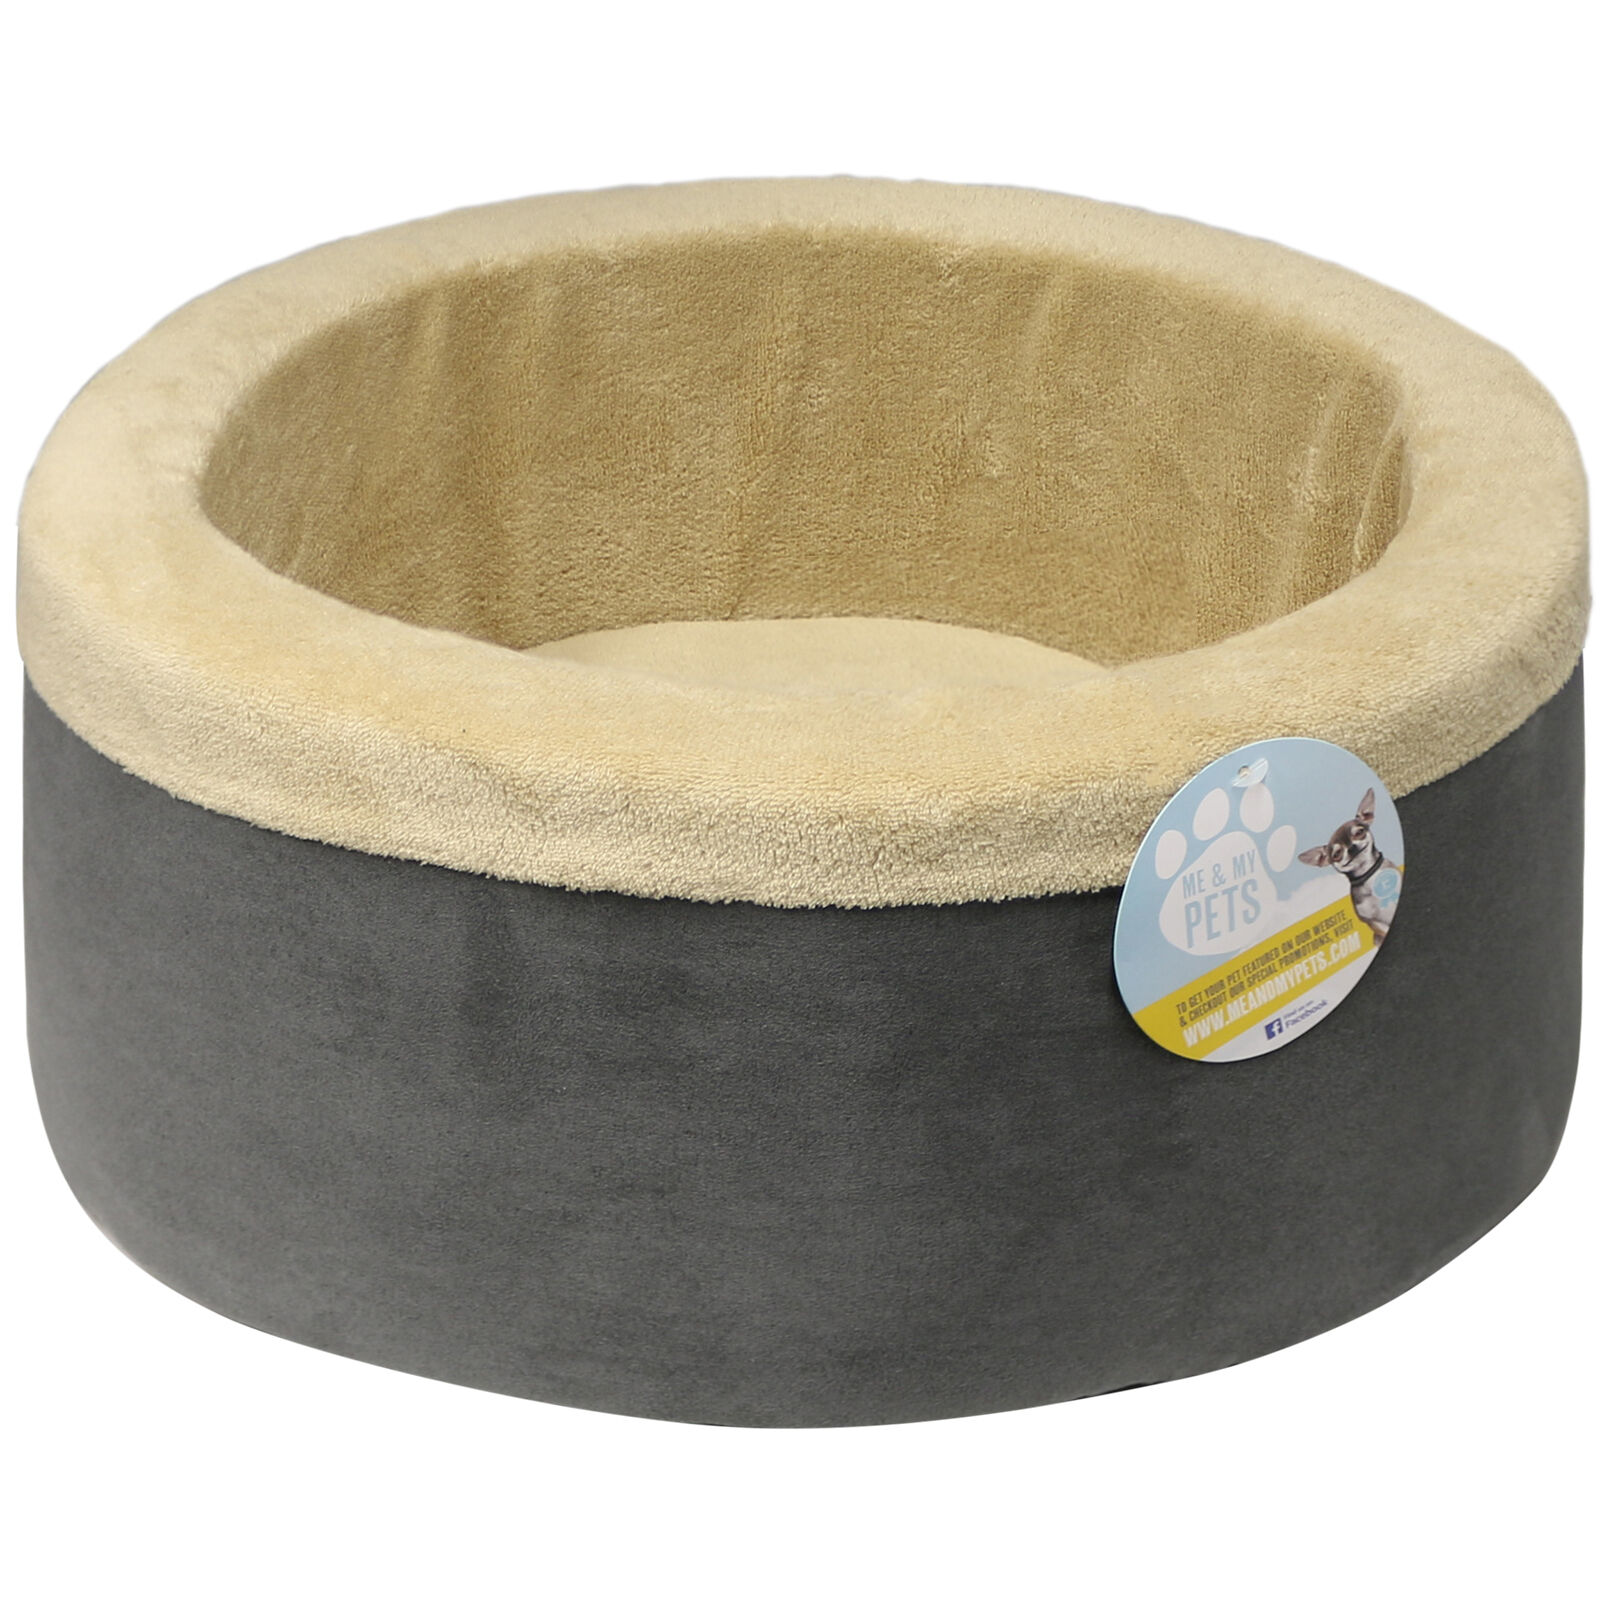 Me & My Grey/beige 30Cm Soft Round High Side Cat Bed Snug/cosy Kitten/dog/puppy